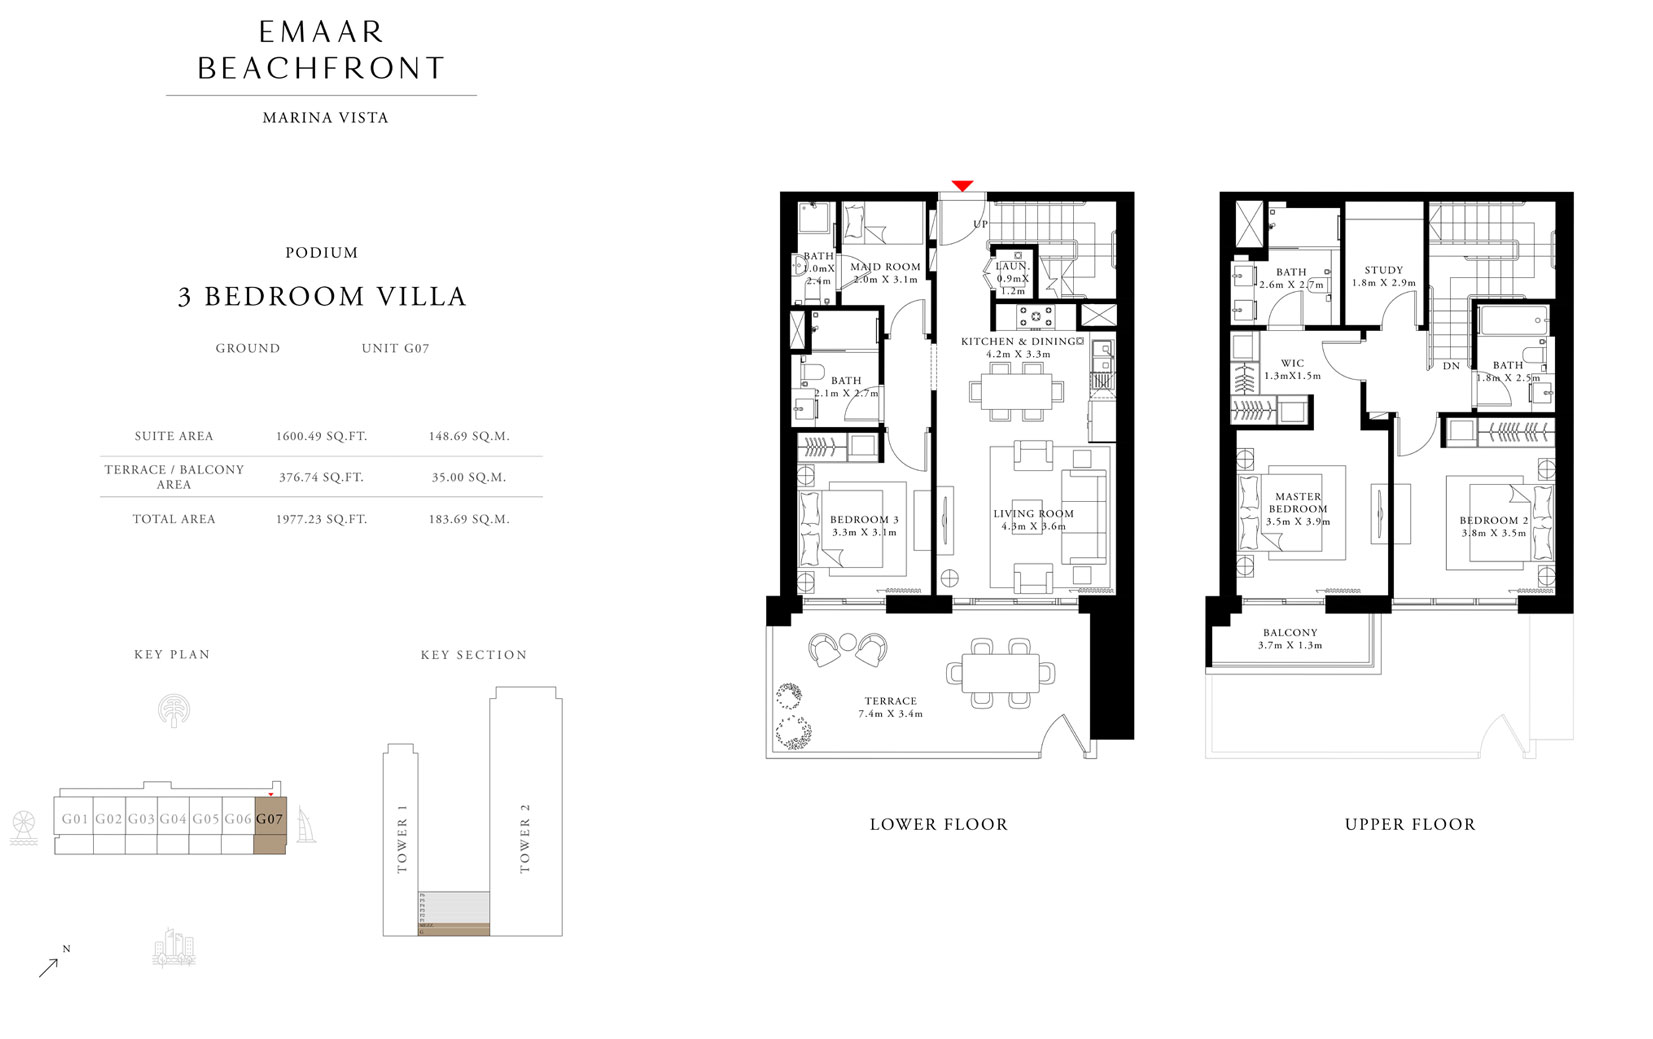 3 Bedroom Villa, Podium, Ground, Unit G 07, Size 1977.23 Sq Ft